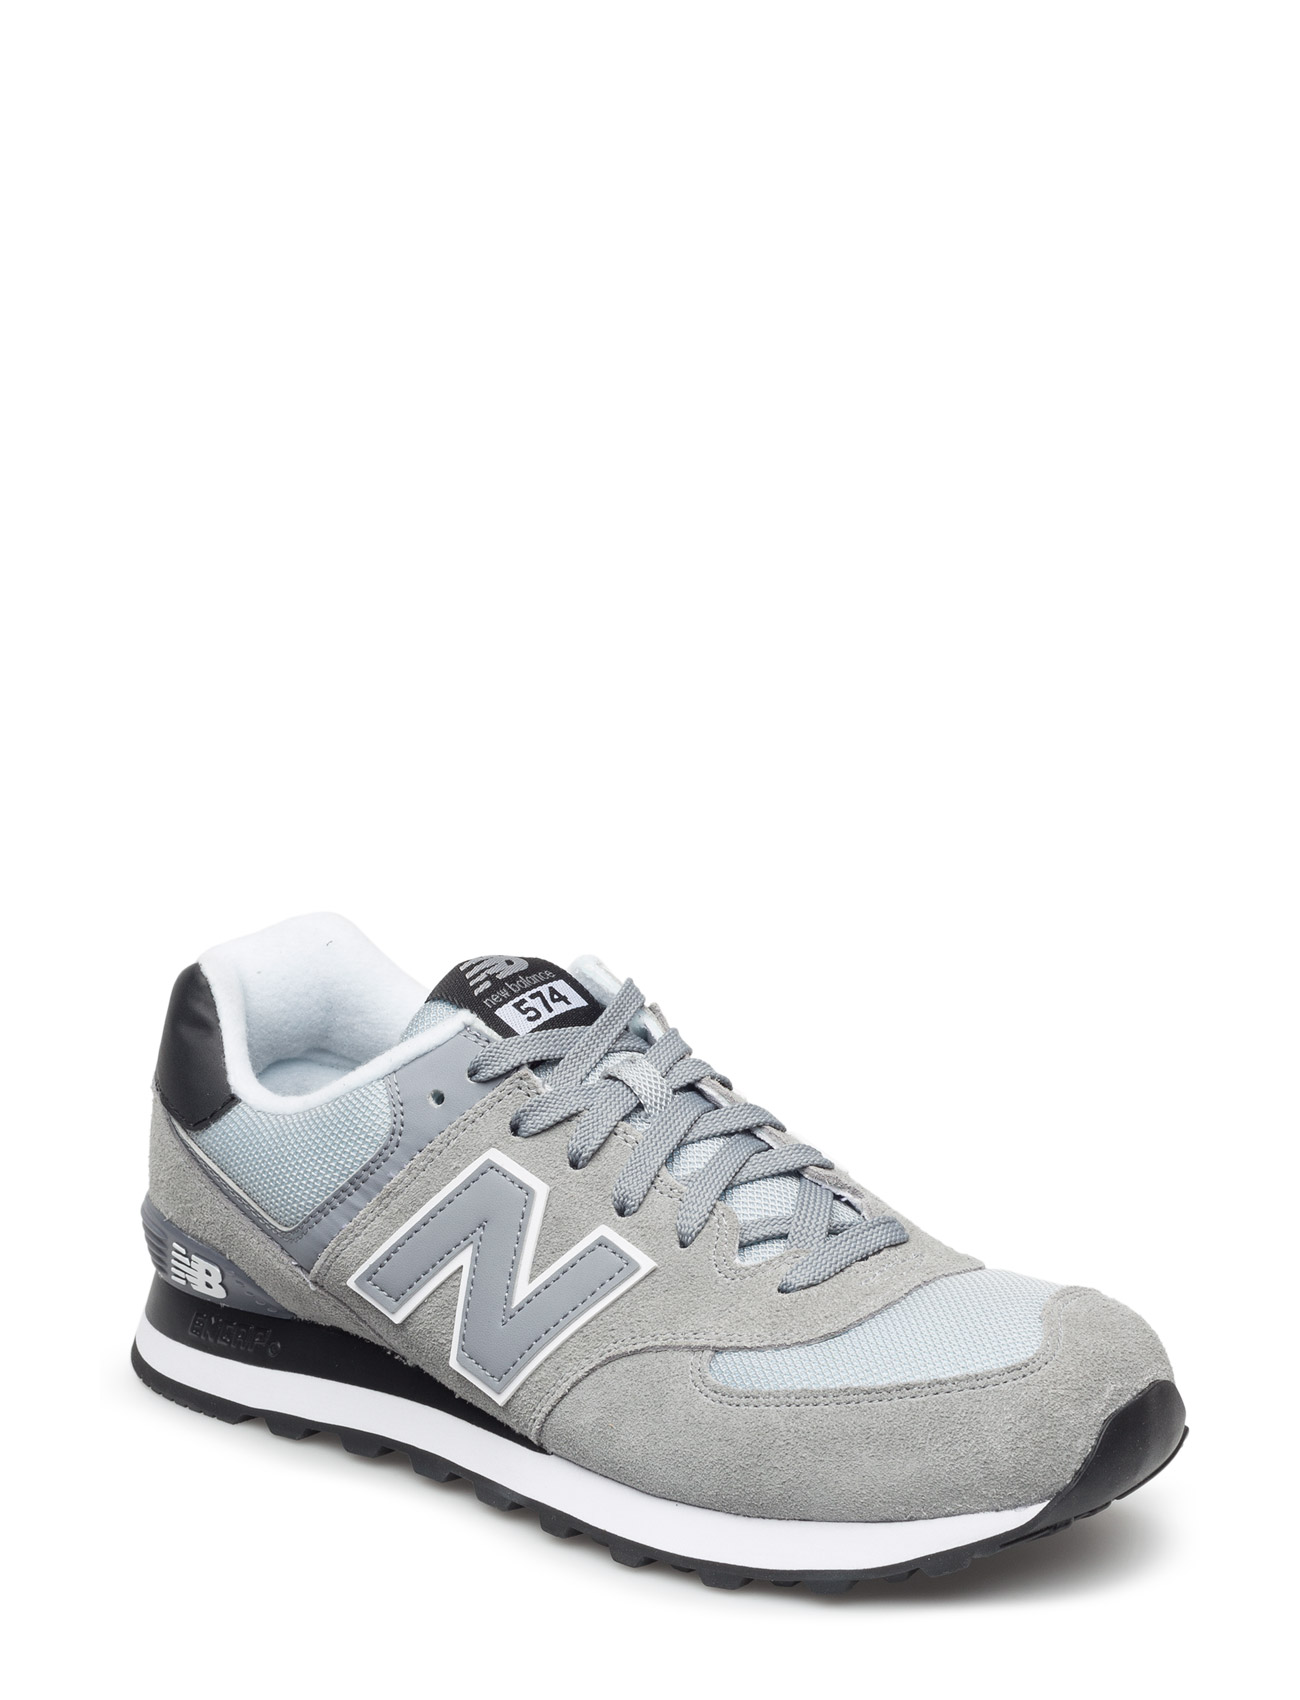 Ml574 New Balance Sneakers til Mænd i Stål